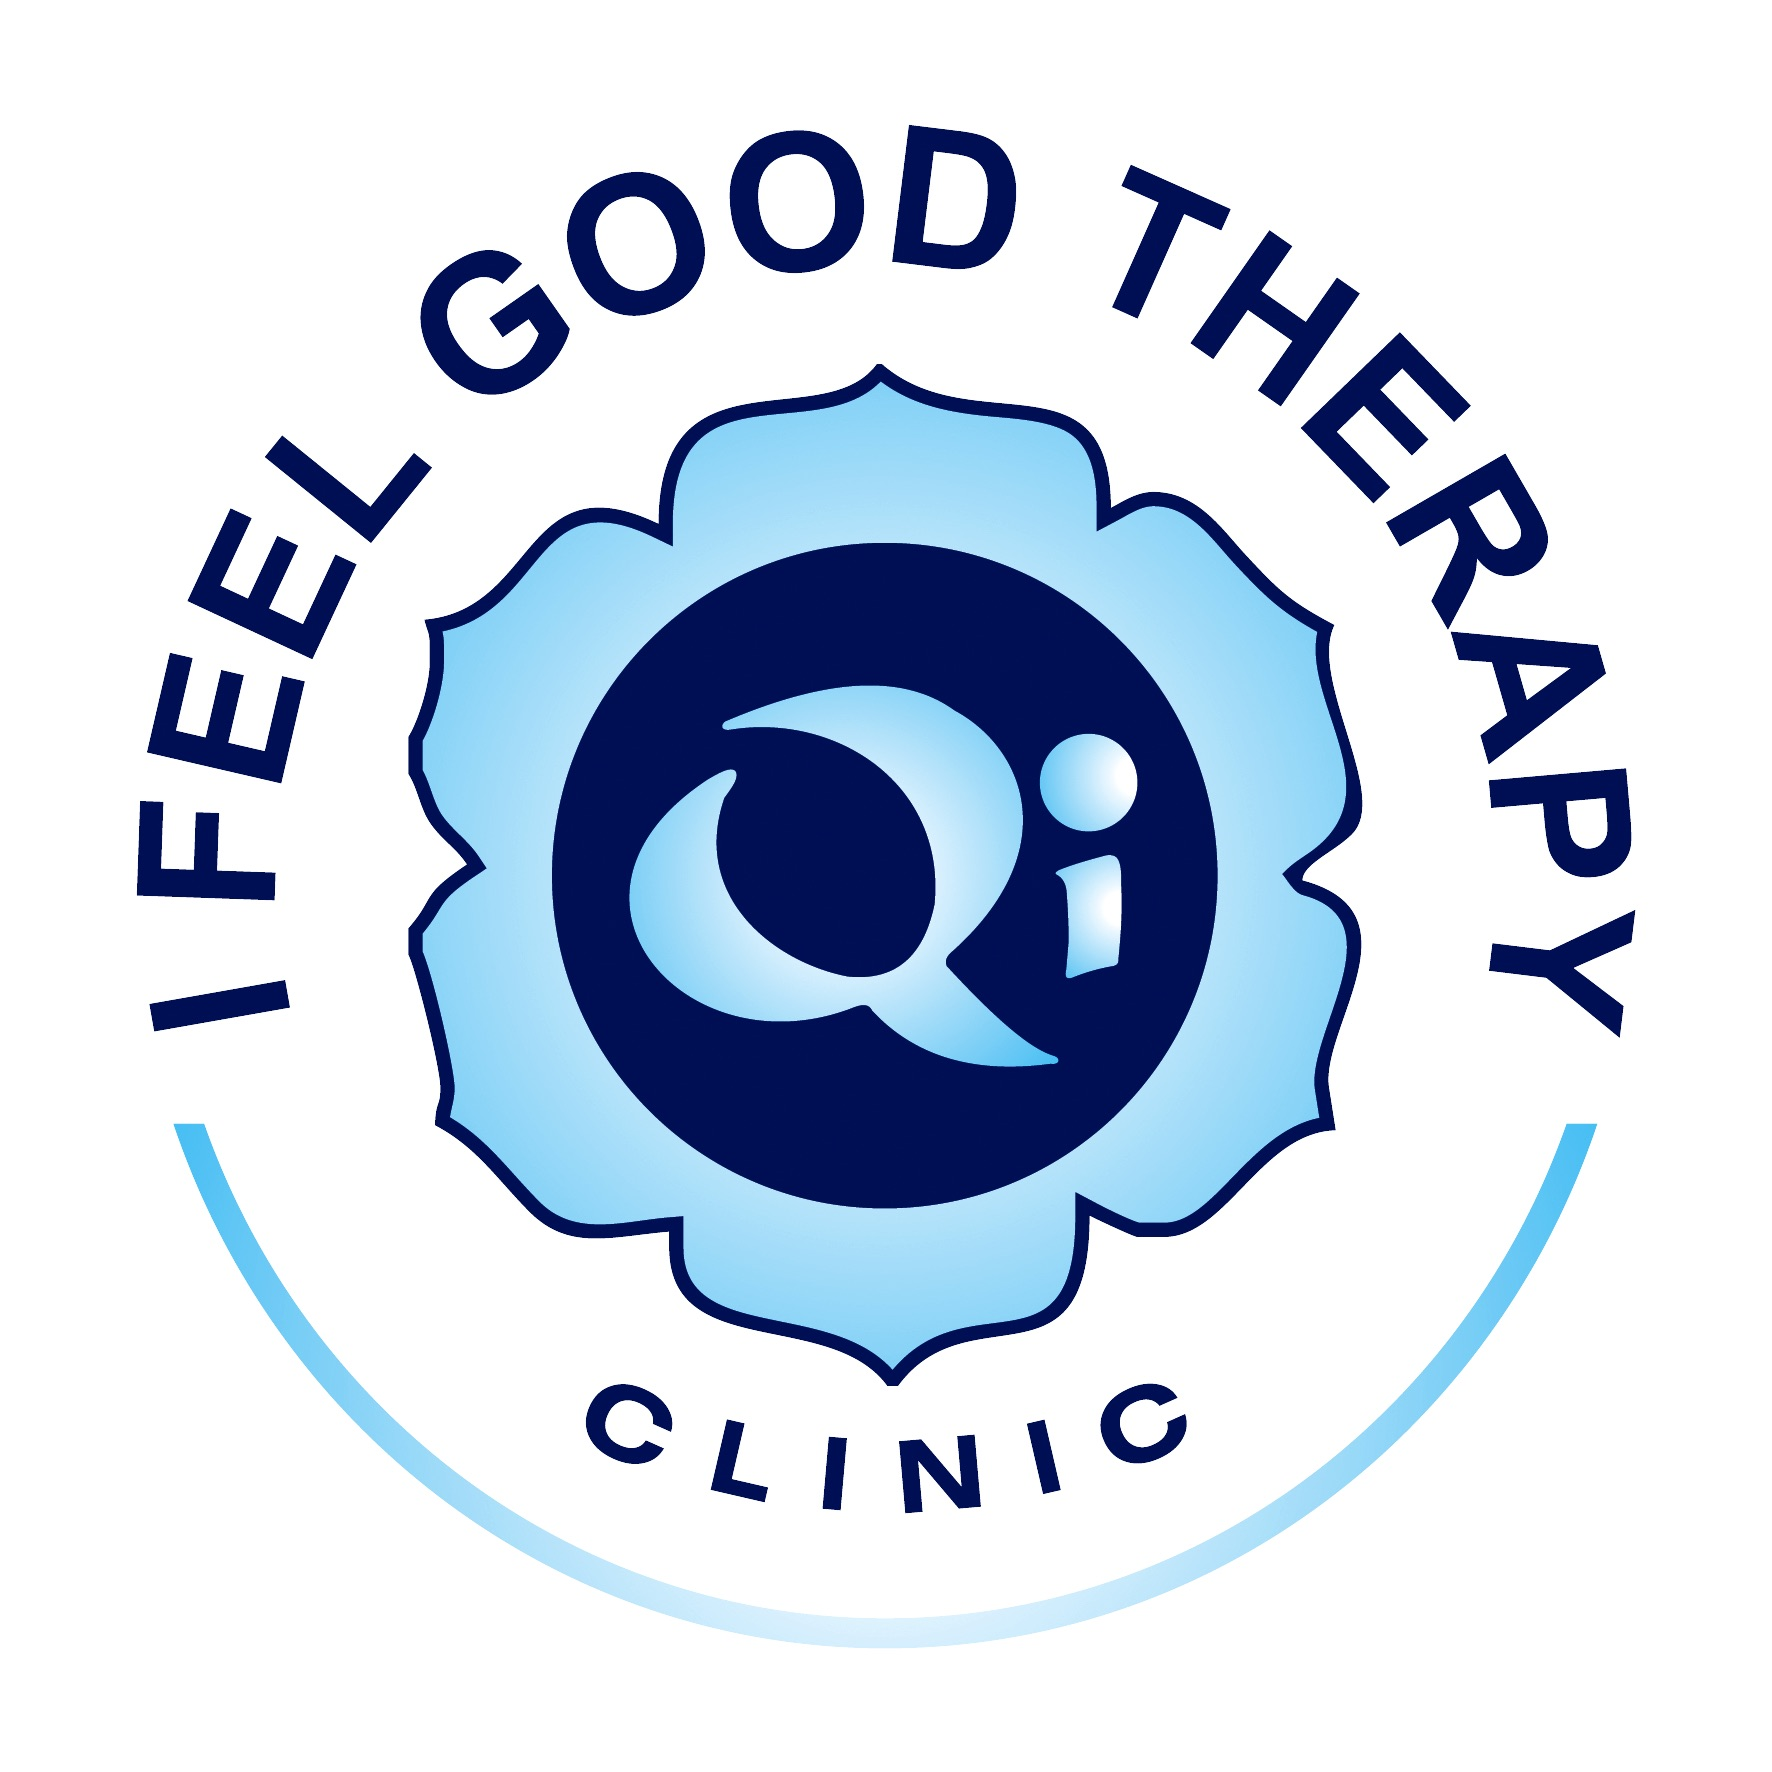 I feel good therapy clinic